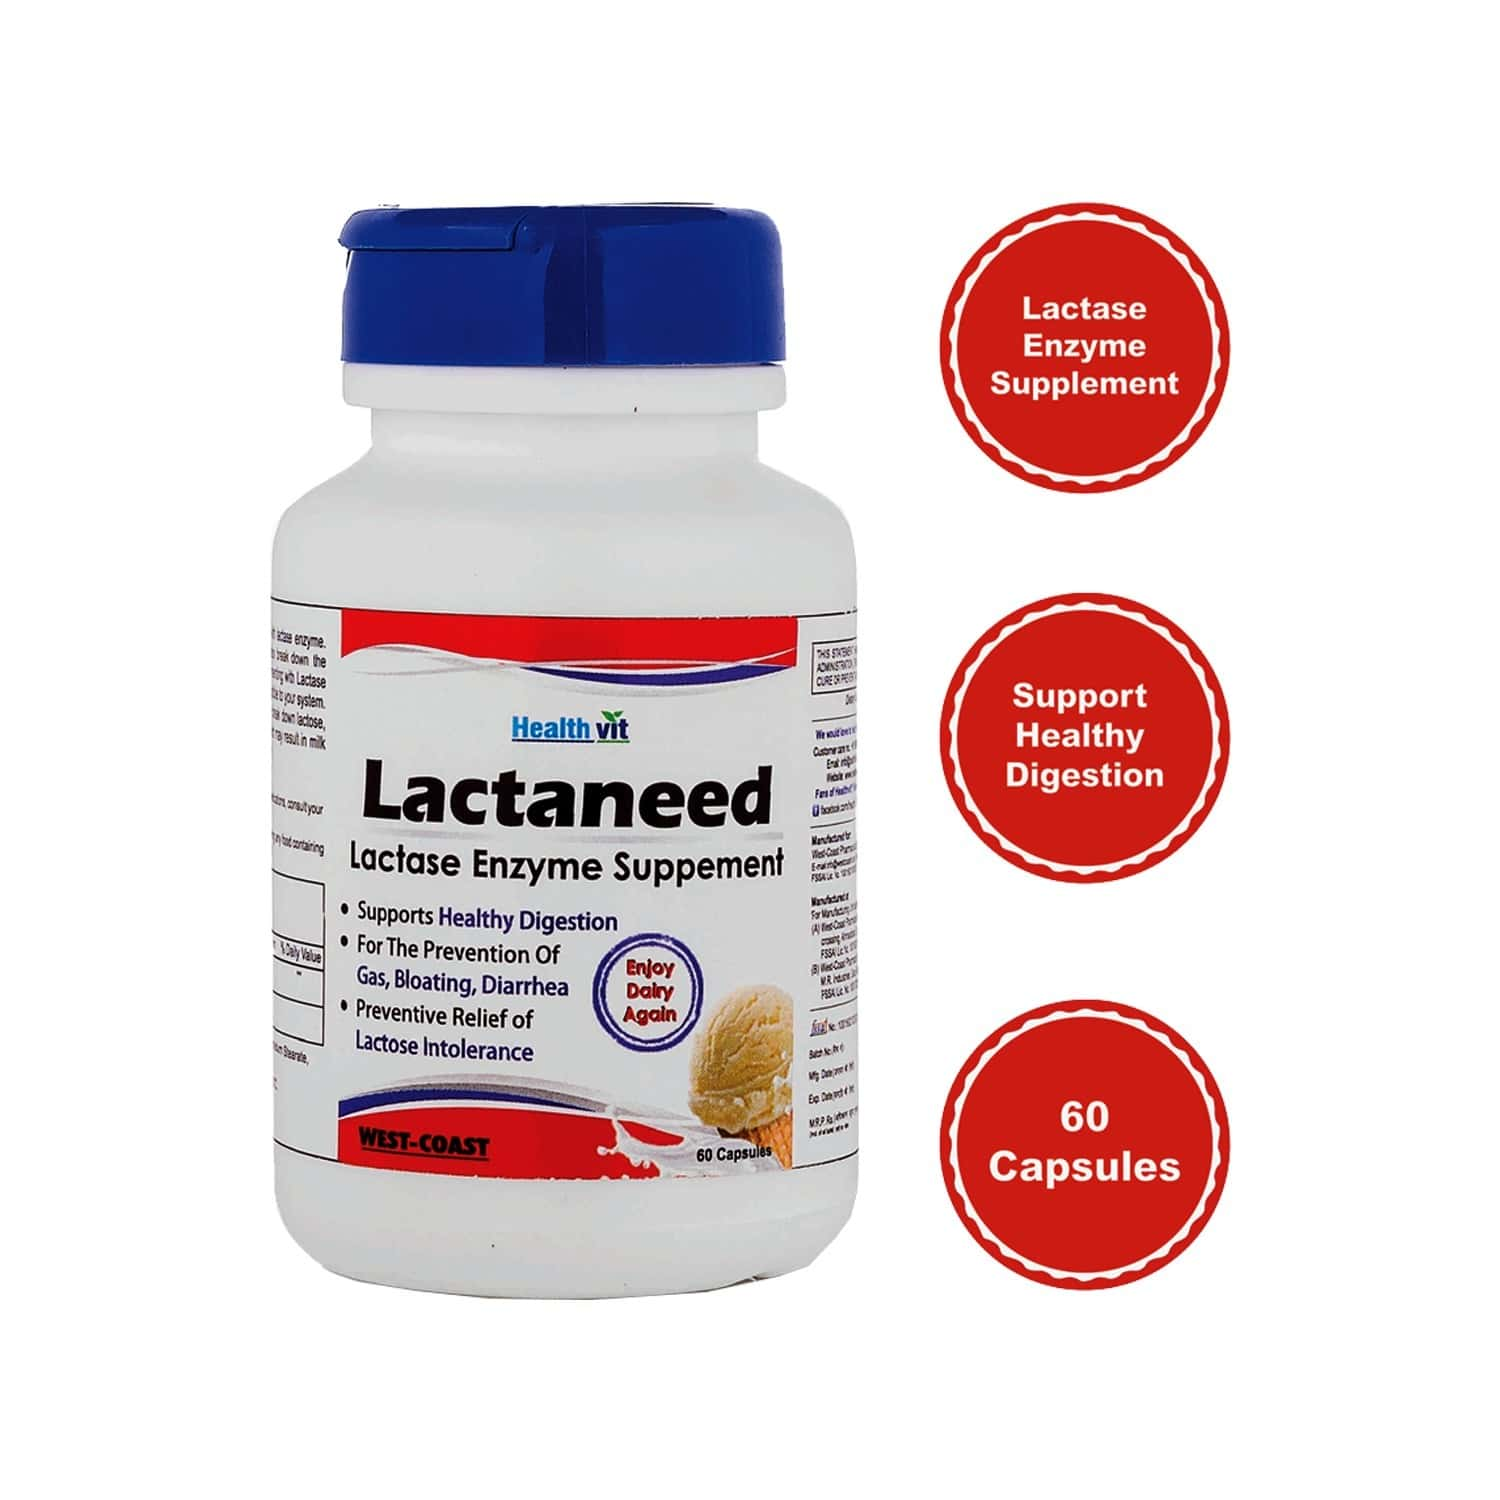 Healthvit Lactaneed Lactase Enzyme Supplement 300mg For Lactose Intolerance - 60 Capsules